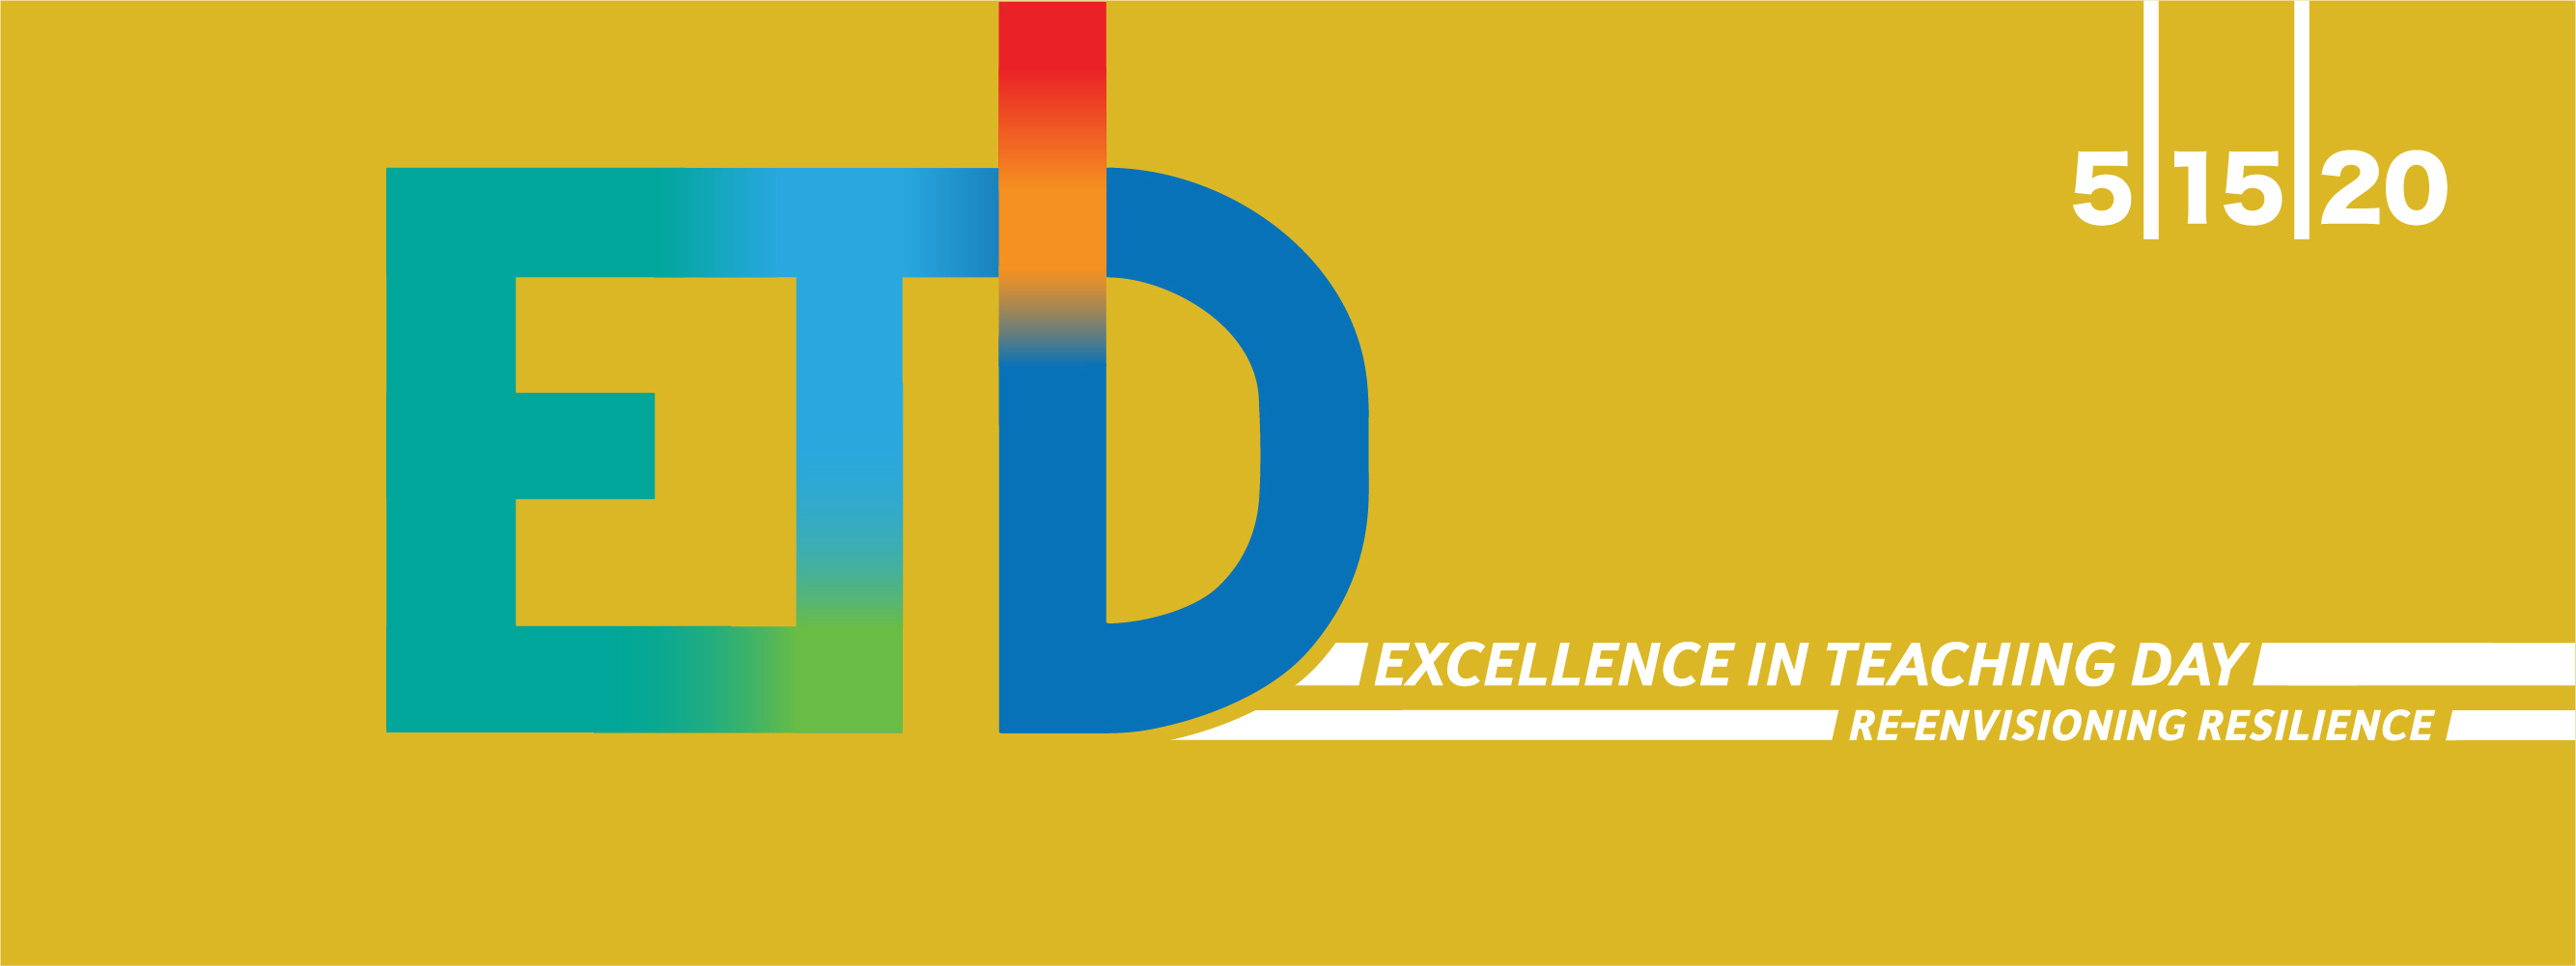 Excellence in Teaching Day branding image